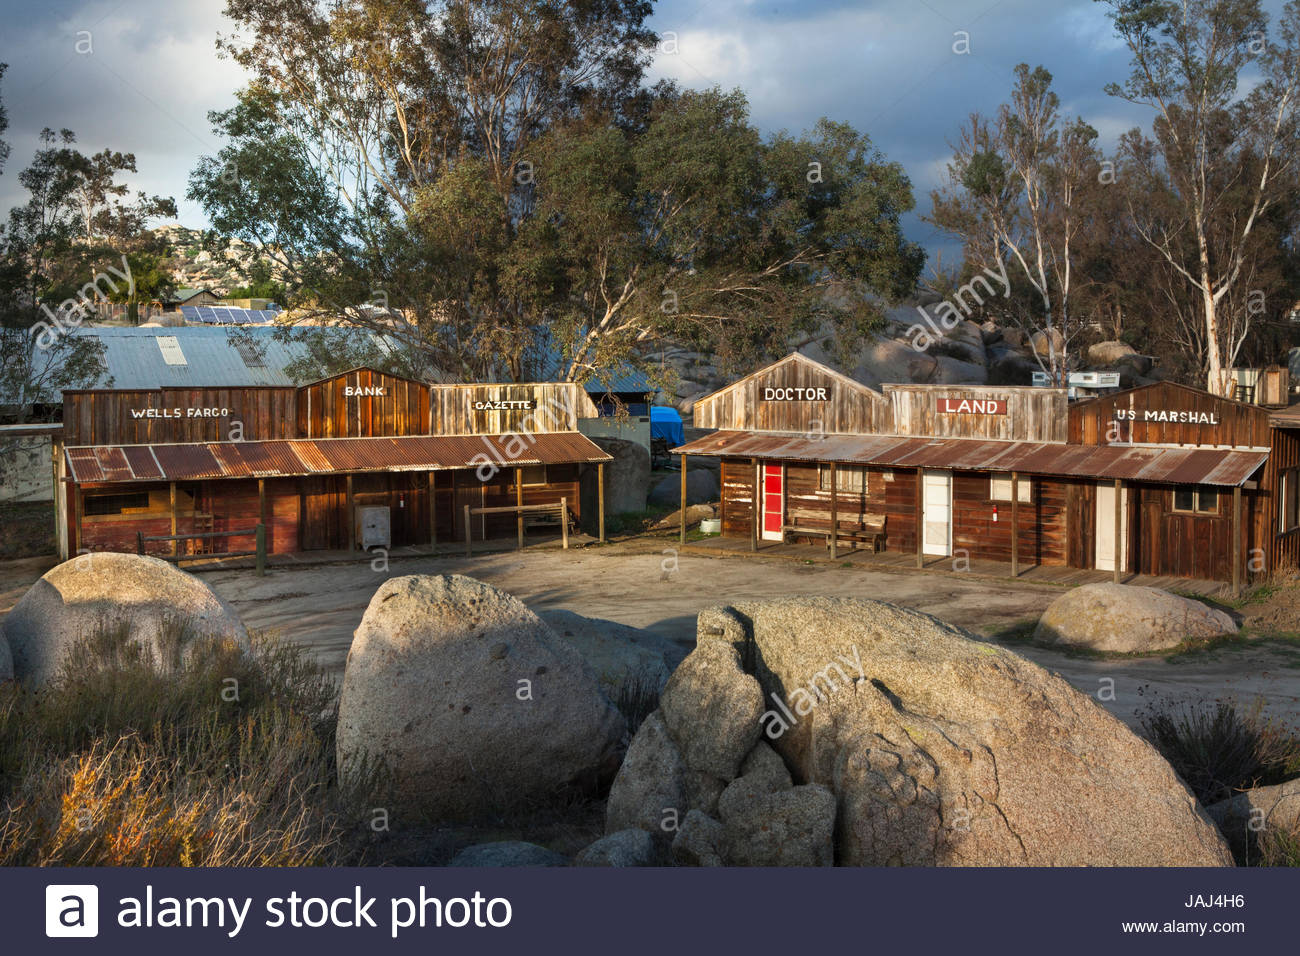 The Wooden Nickel Ranch with facades of an old-time Western town in Menifee, California. - Stock Image